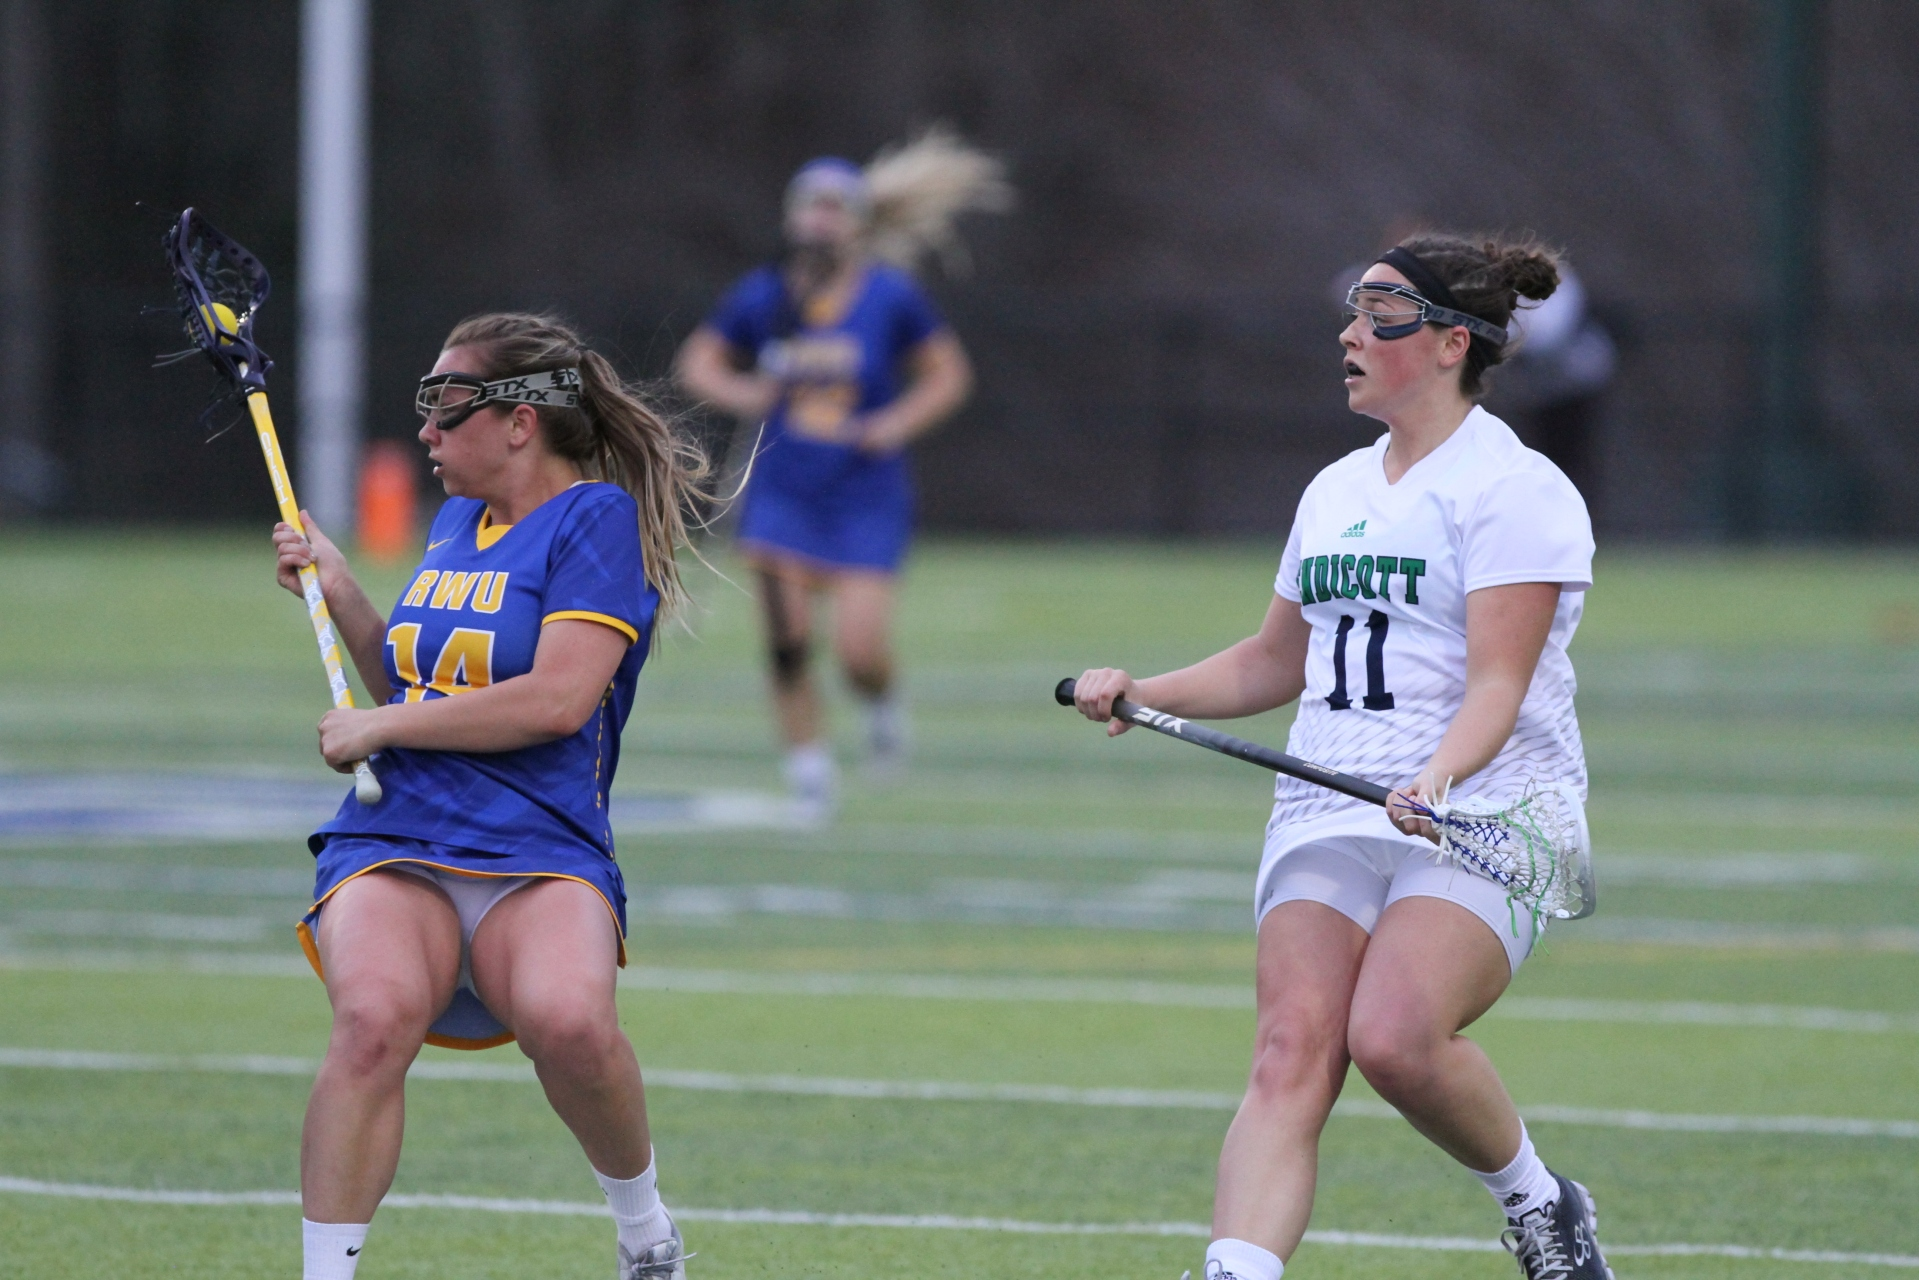 Roger Williams University vs. Endicott College 2018 CCC Women's Lacrosse Championship - 7